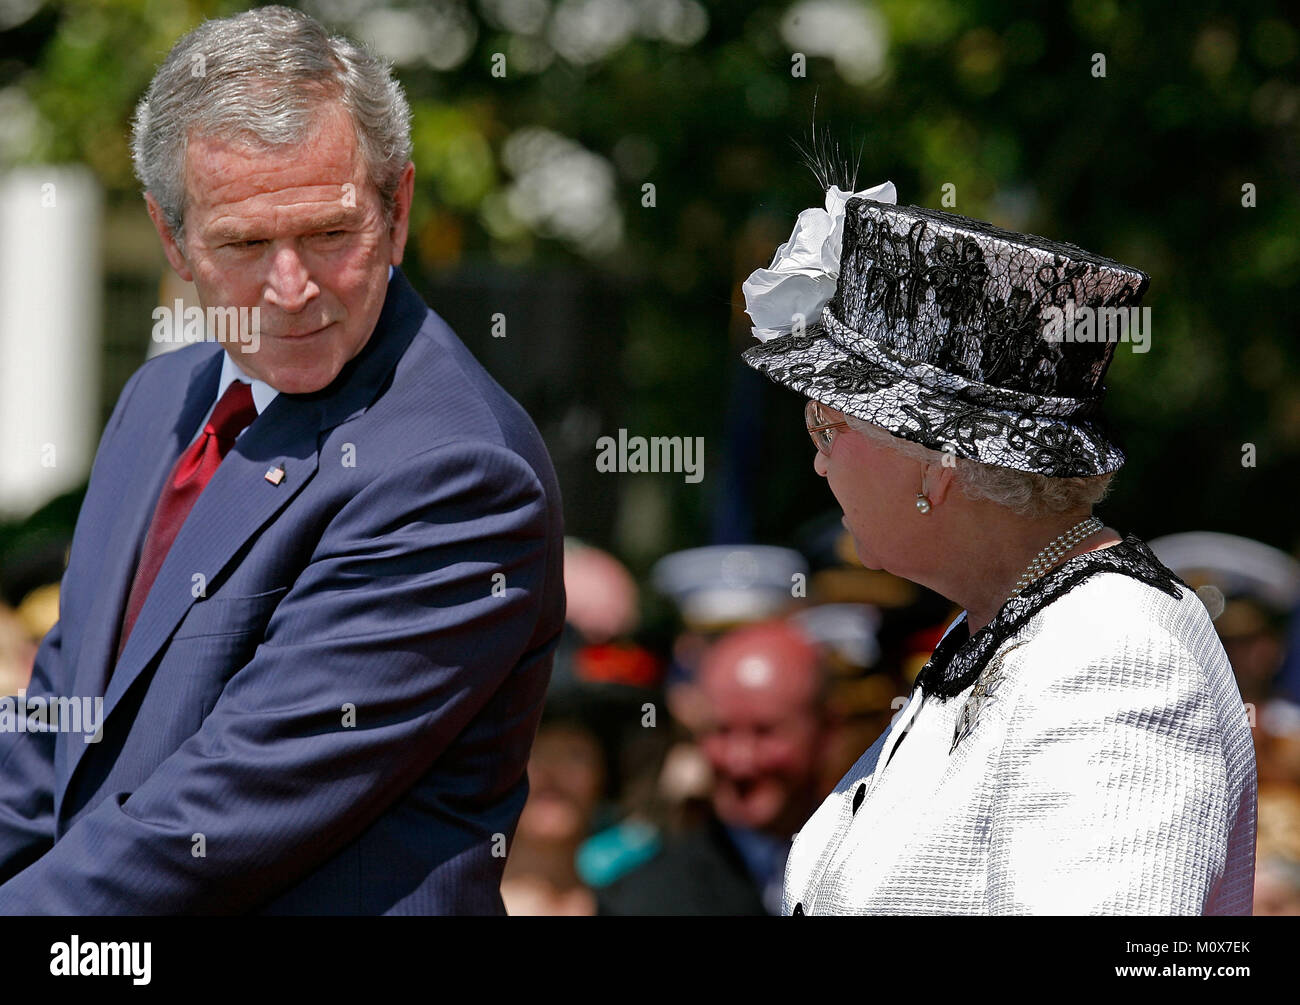 WASHINGTON - MAY 07:  (AFP OUT) U.S. President George W. Bush and HRH Queen Elizabeth II take part in a ceremony - Stock Image